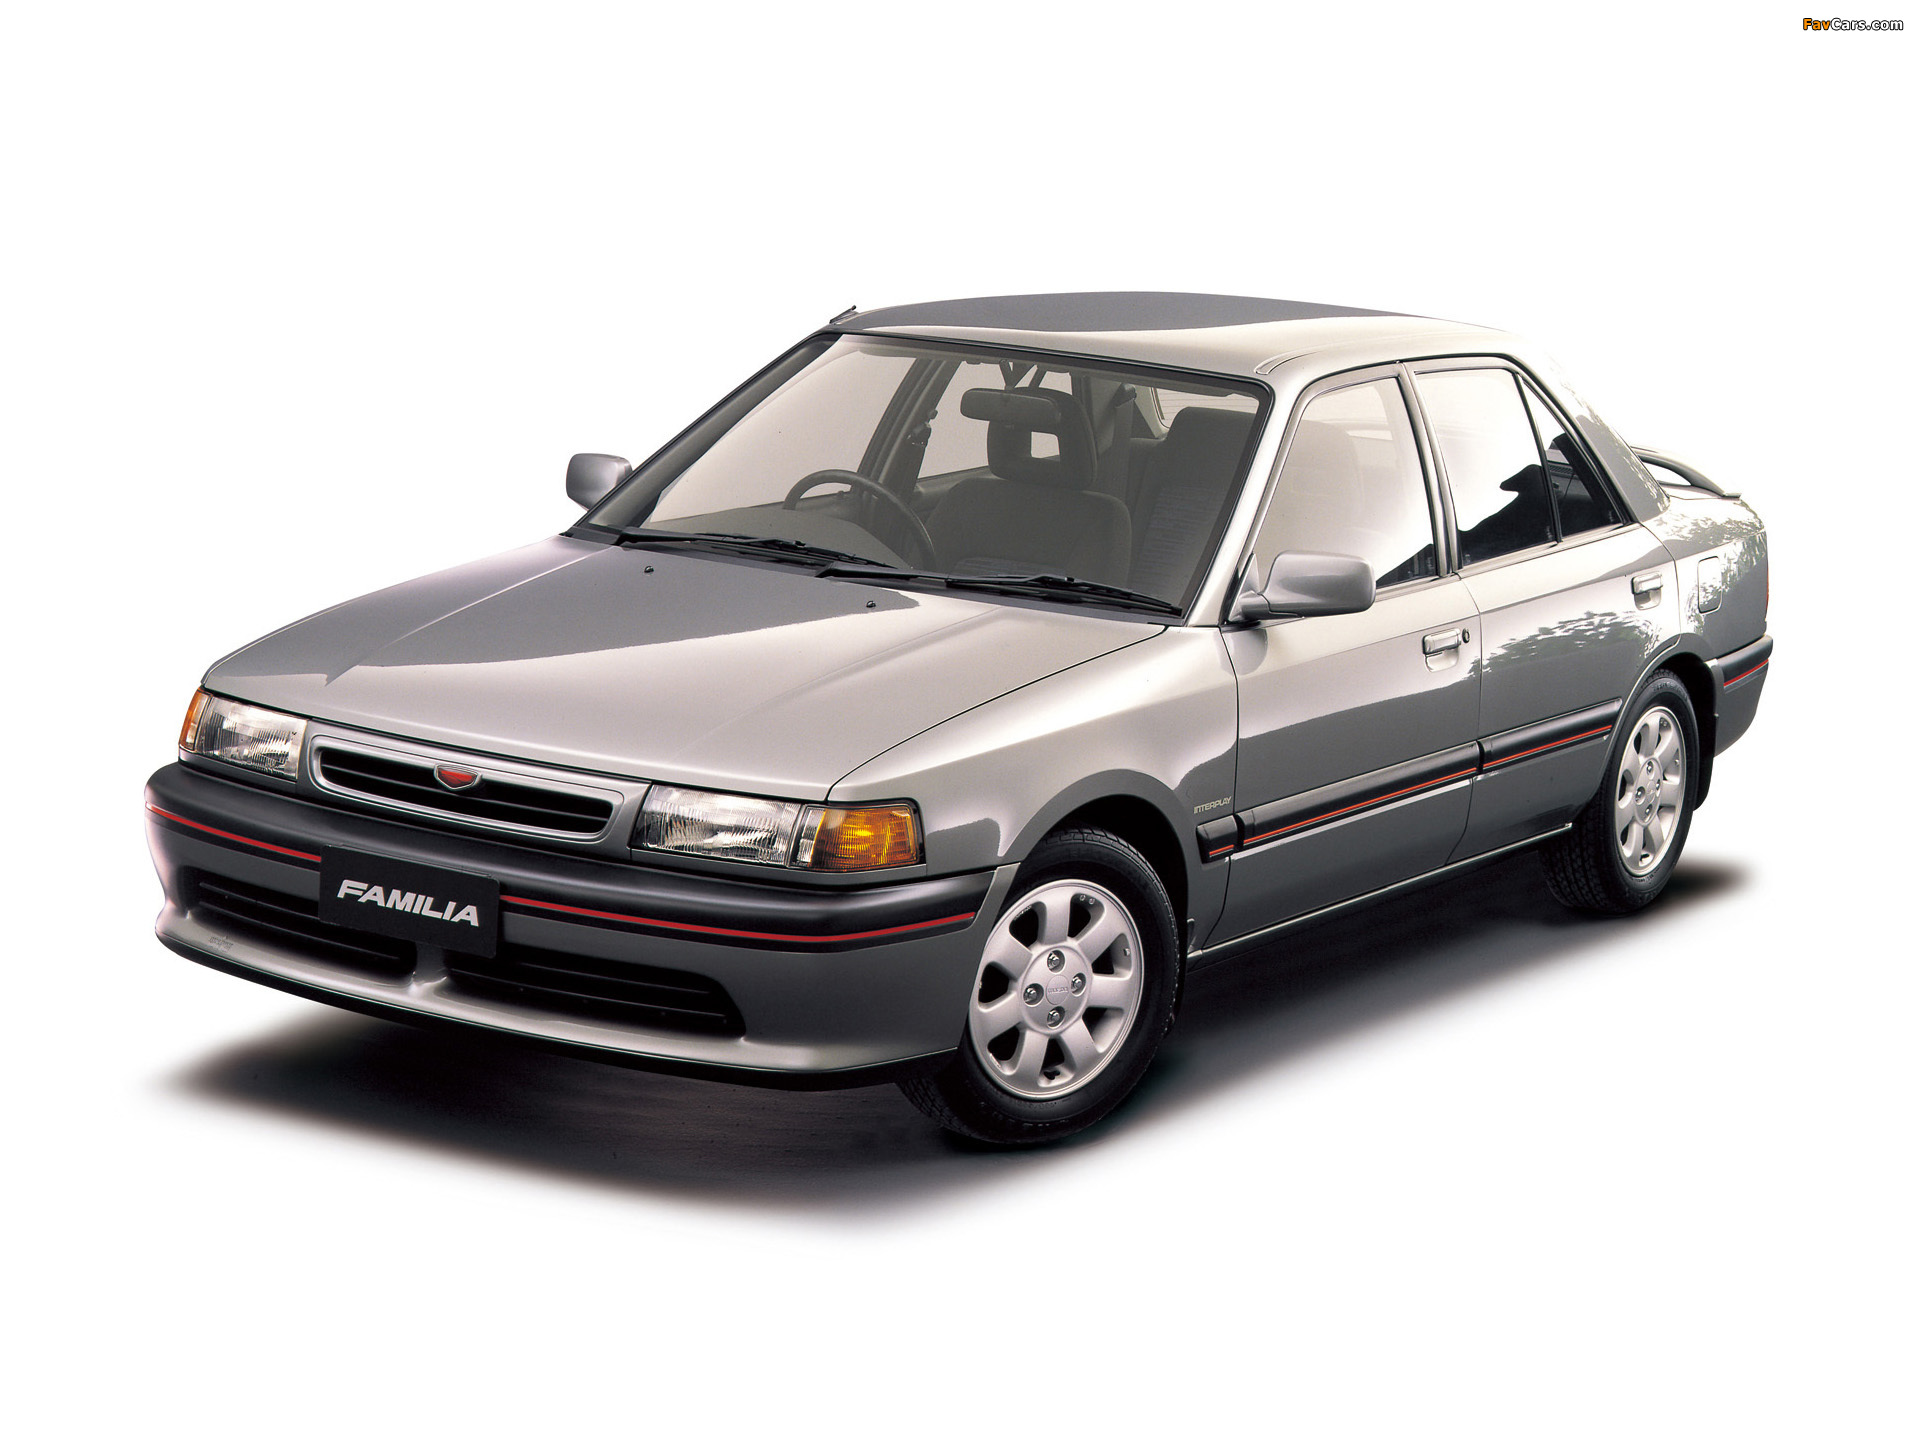 Mazda familia interplay-x. Best photos and information of ...